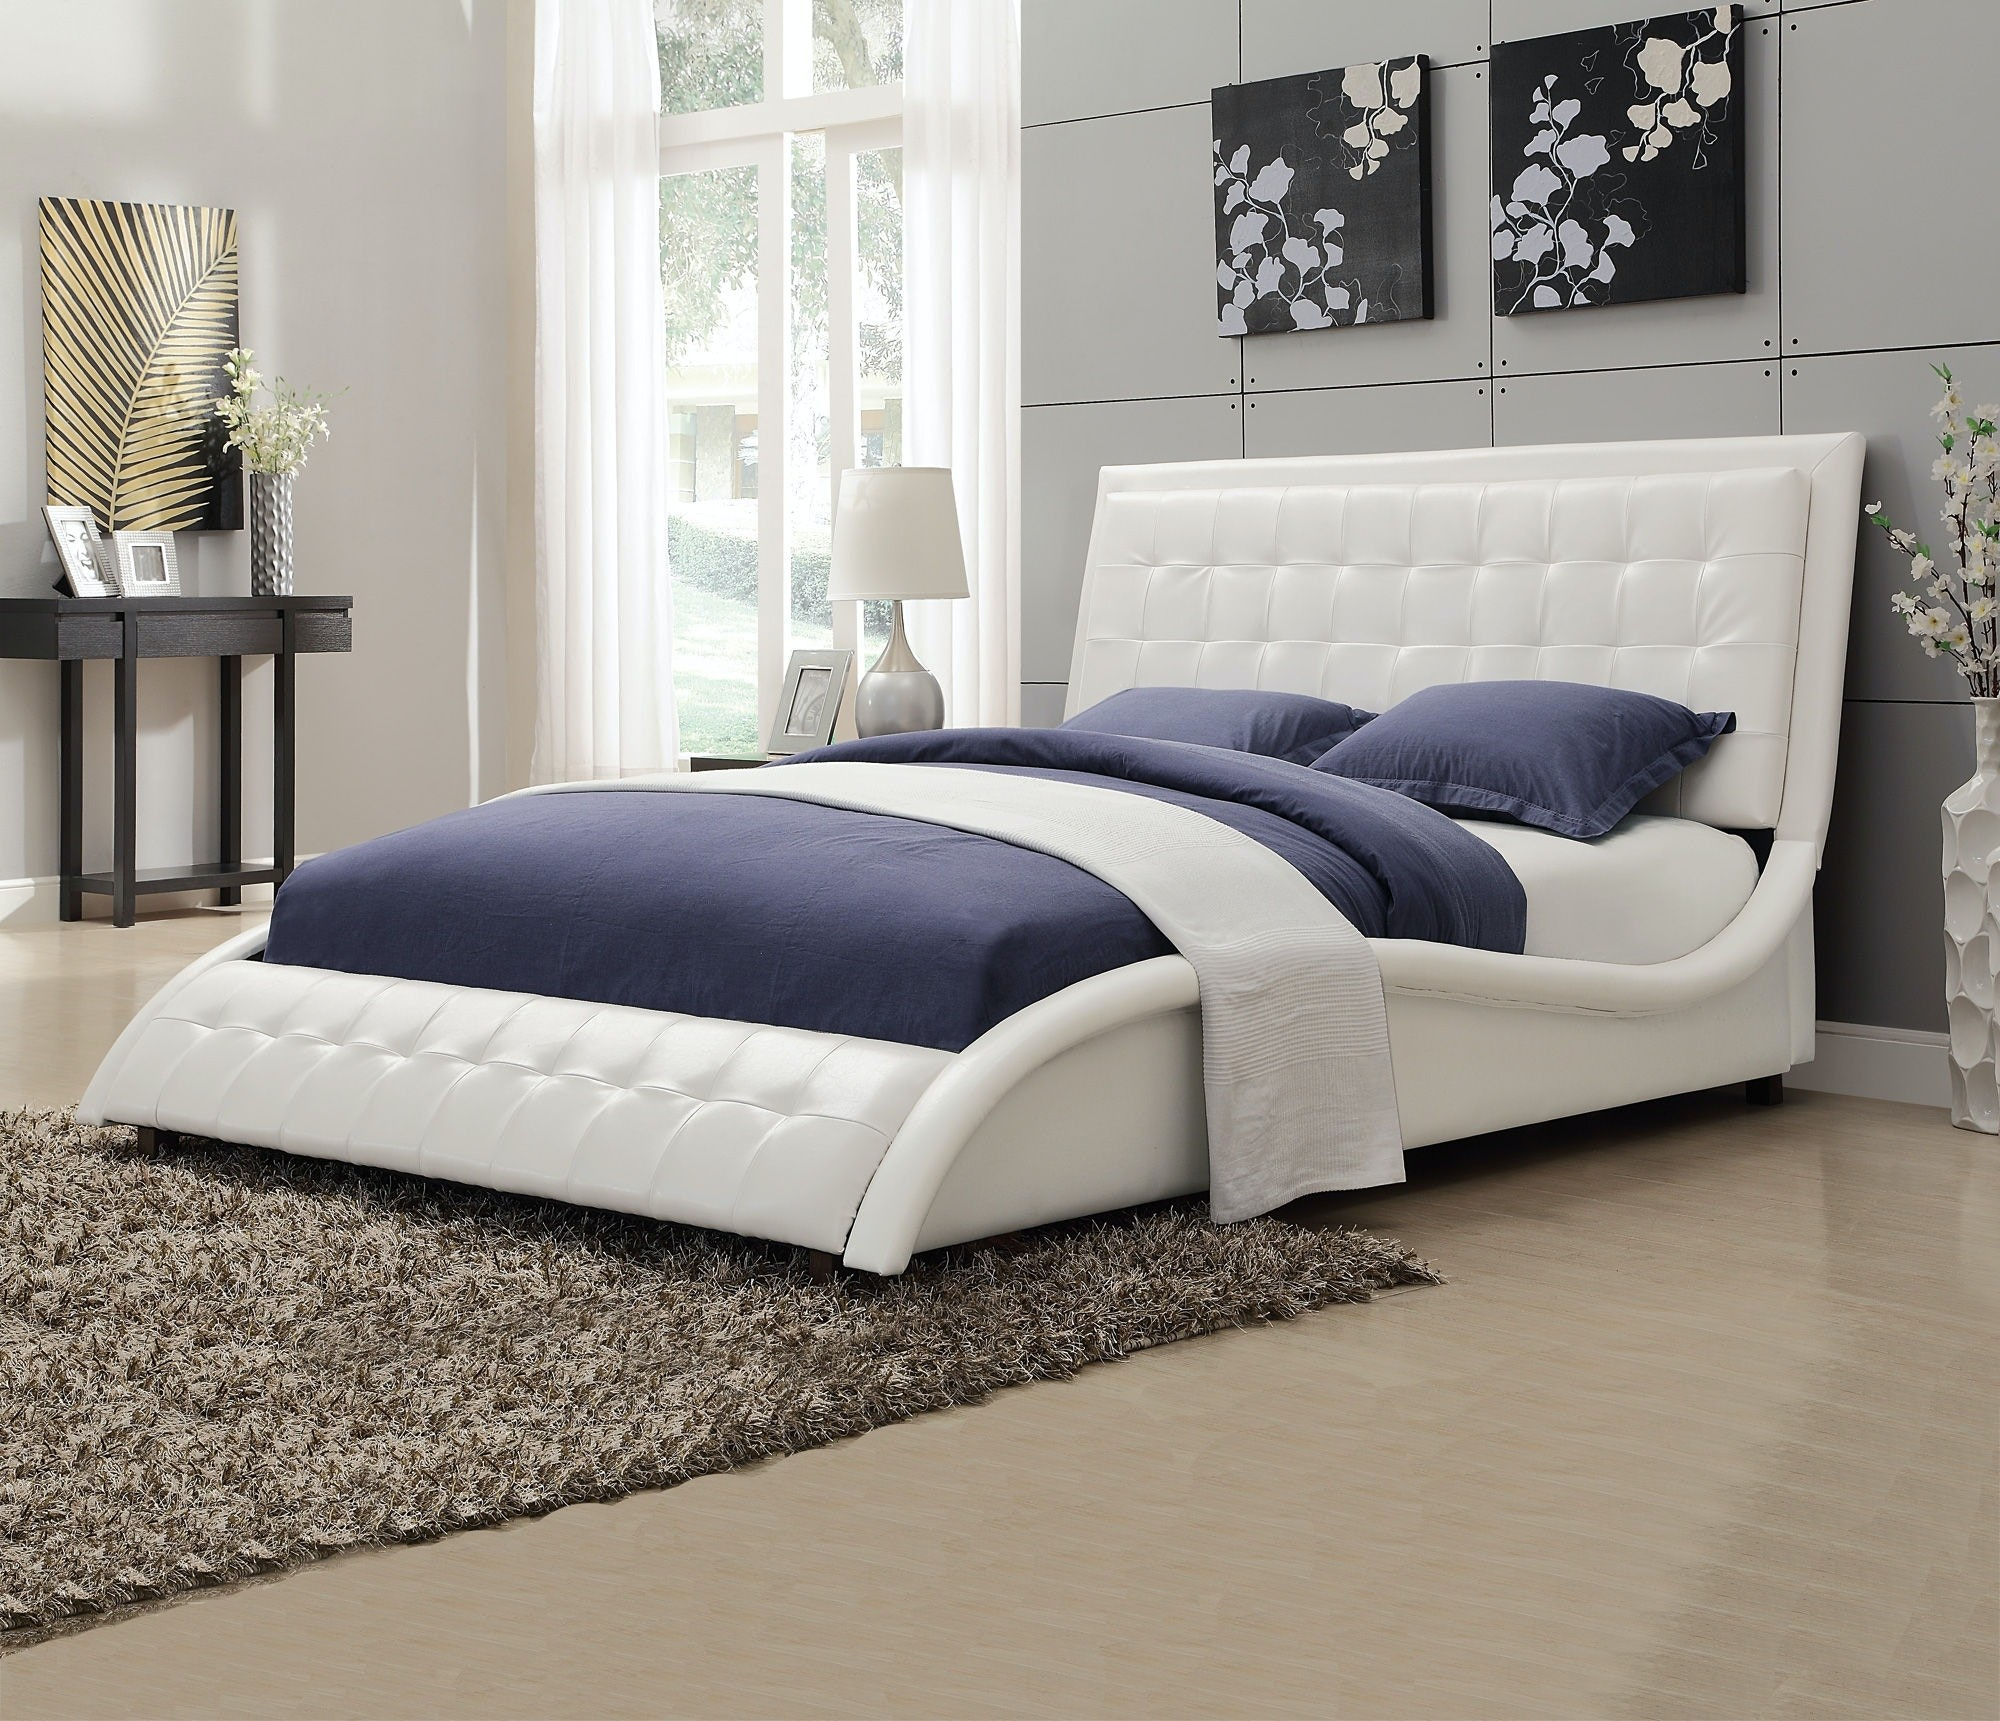 Wonderful Low Profile Bed Frame Exterior